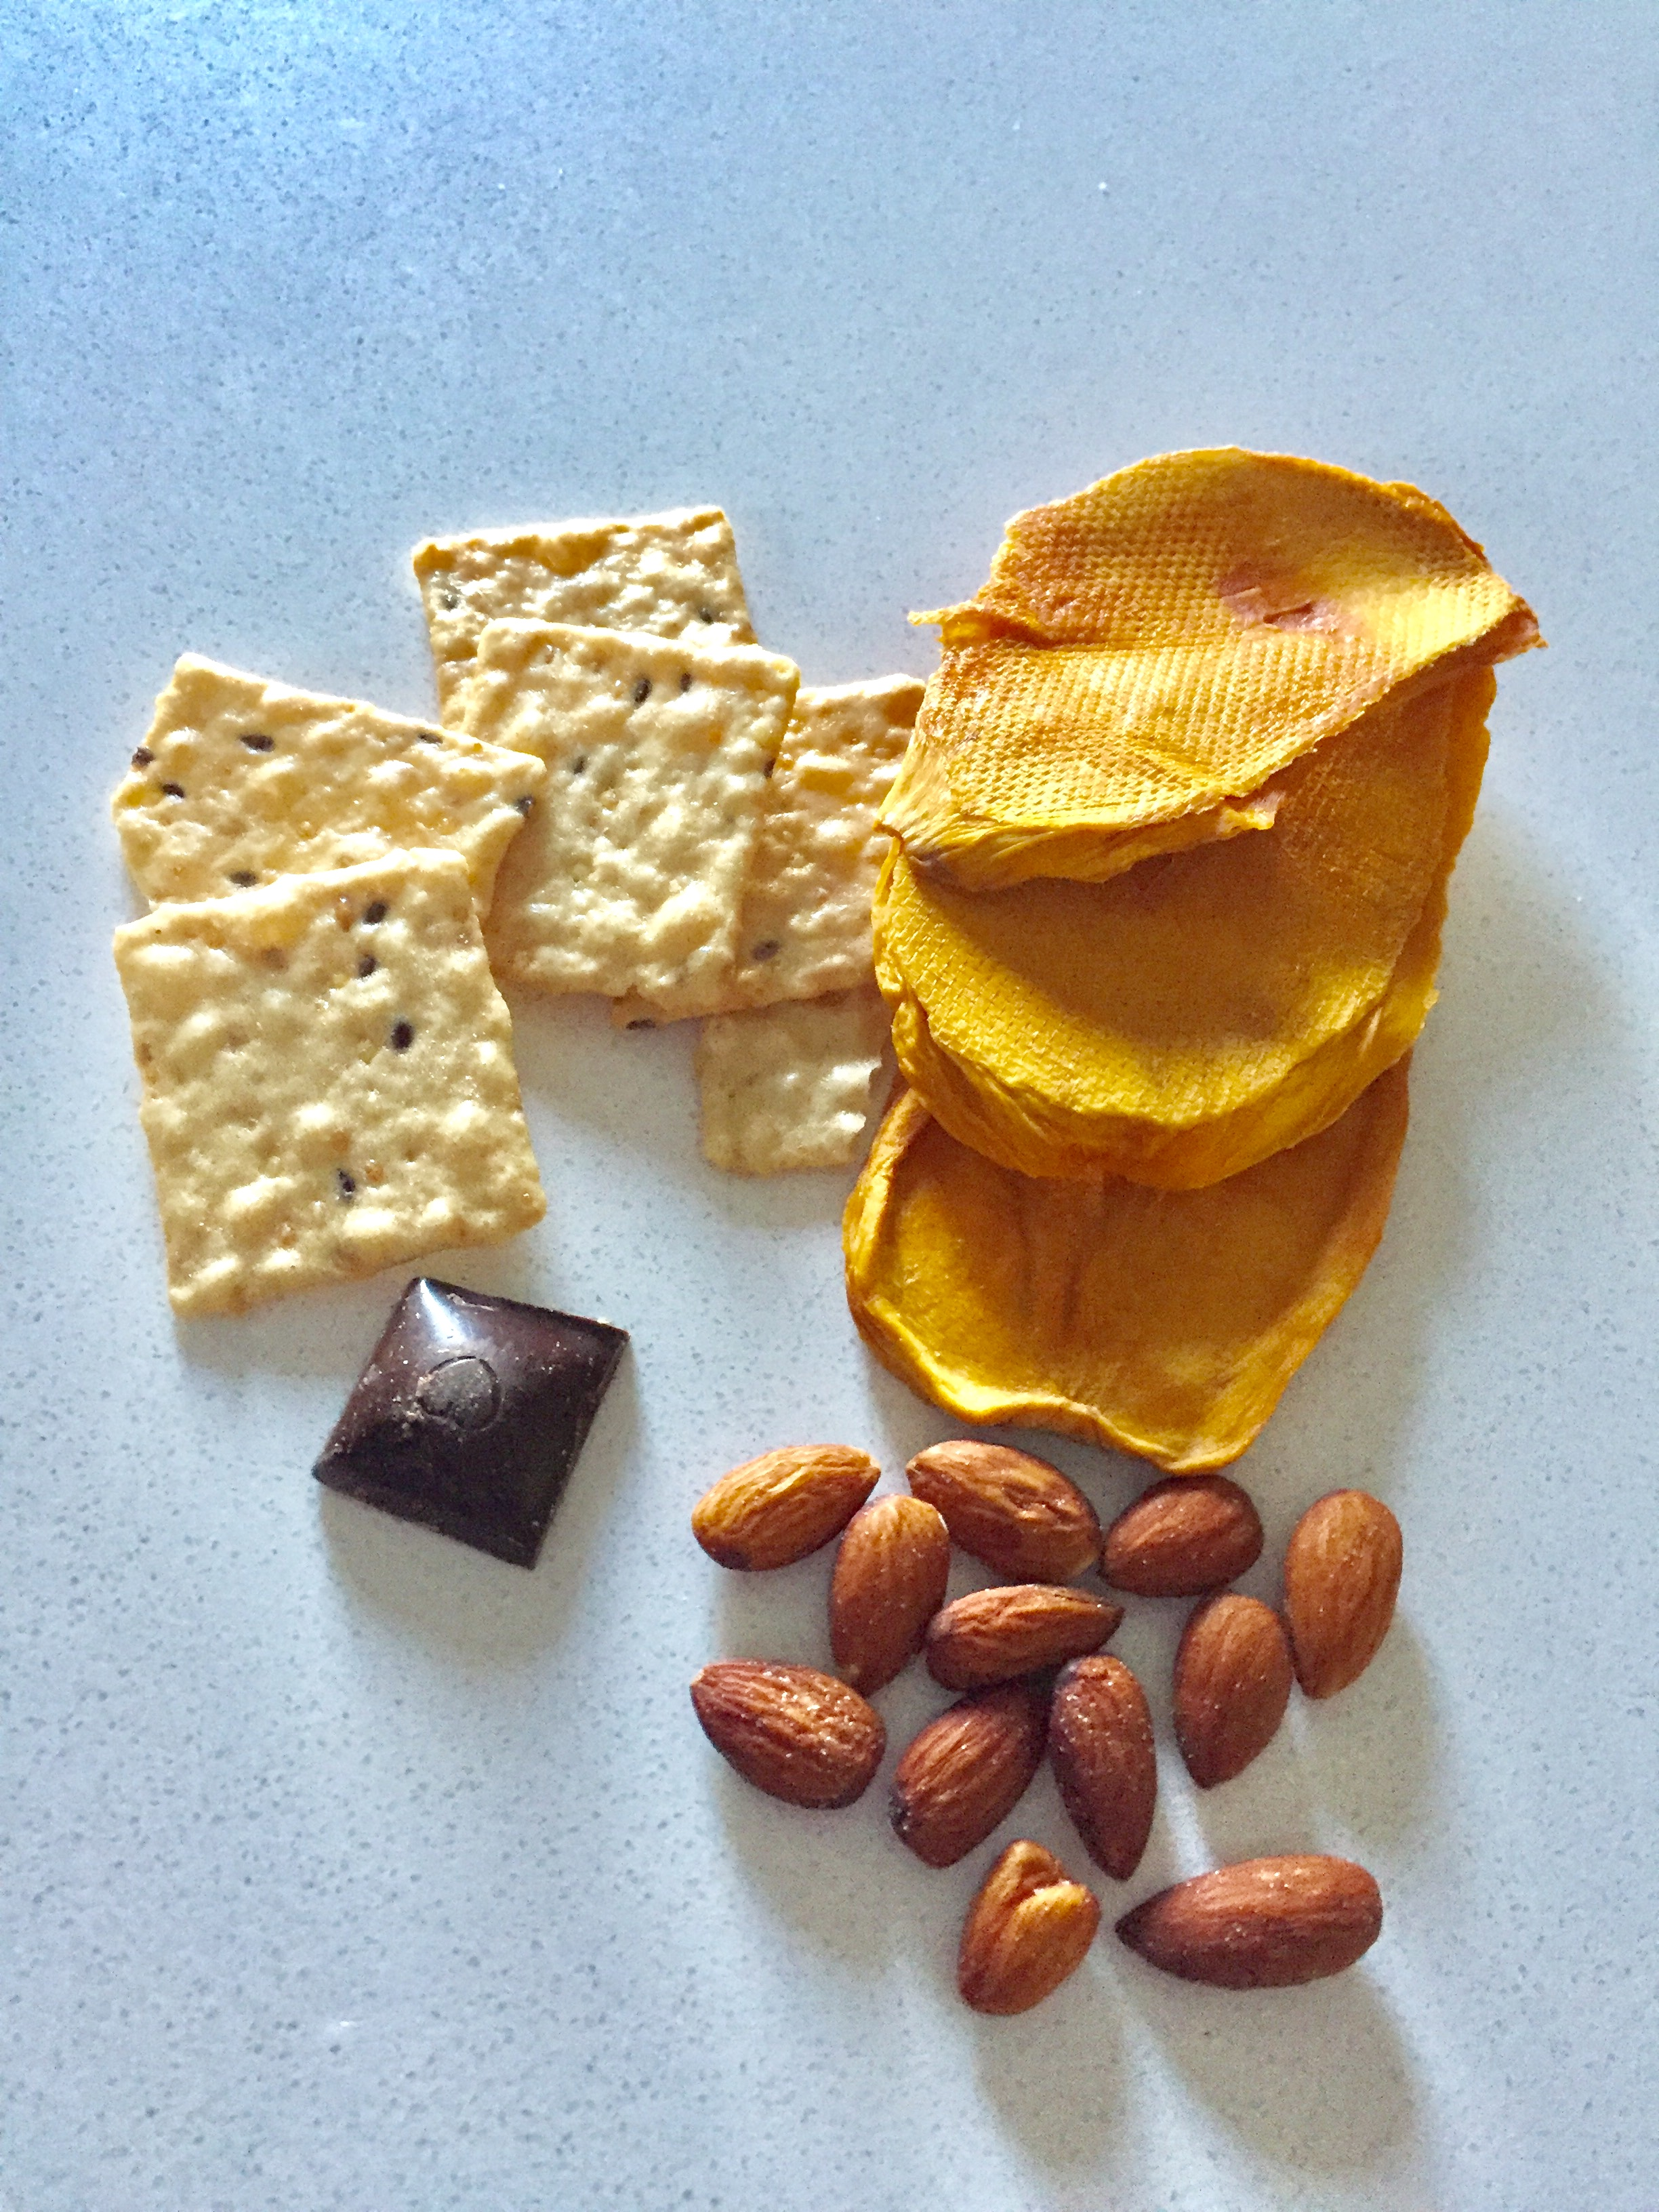 Snack: Rice crackers, dry mango, nuts, dark chocolate.